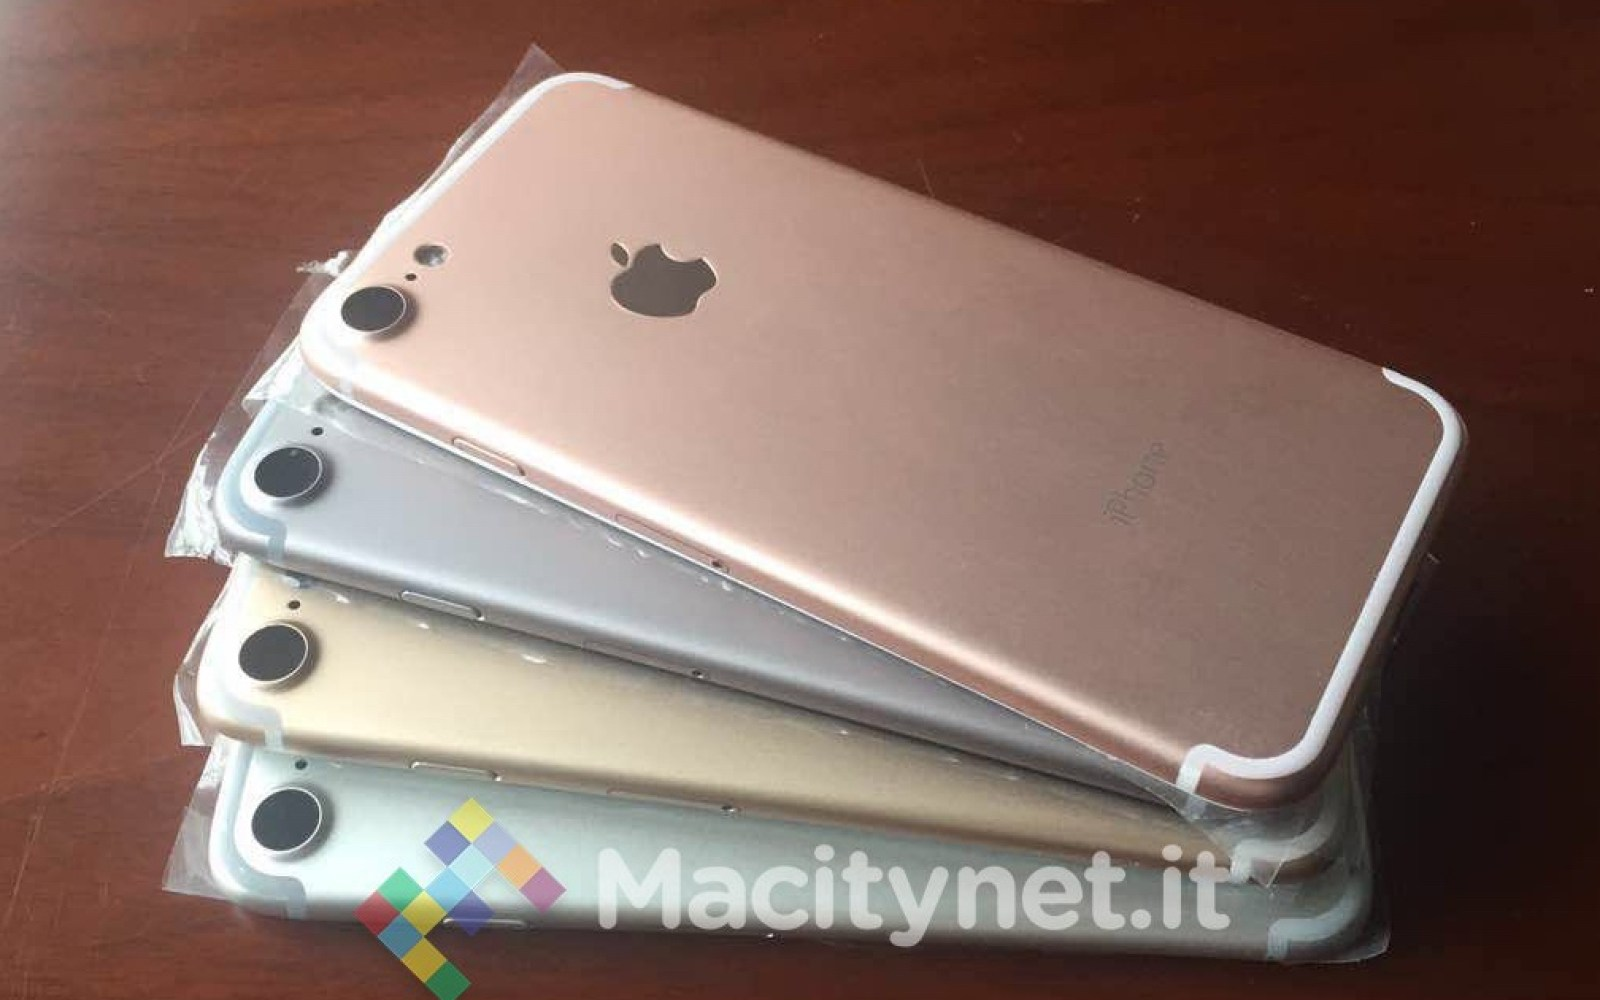 Latest leaks depict iPhone 7 in Silver, Space Gray, Gold and Rose Gold with new style for camera bulge [Update]